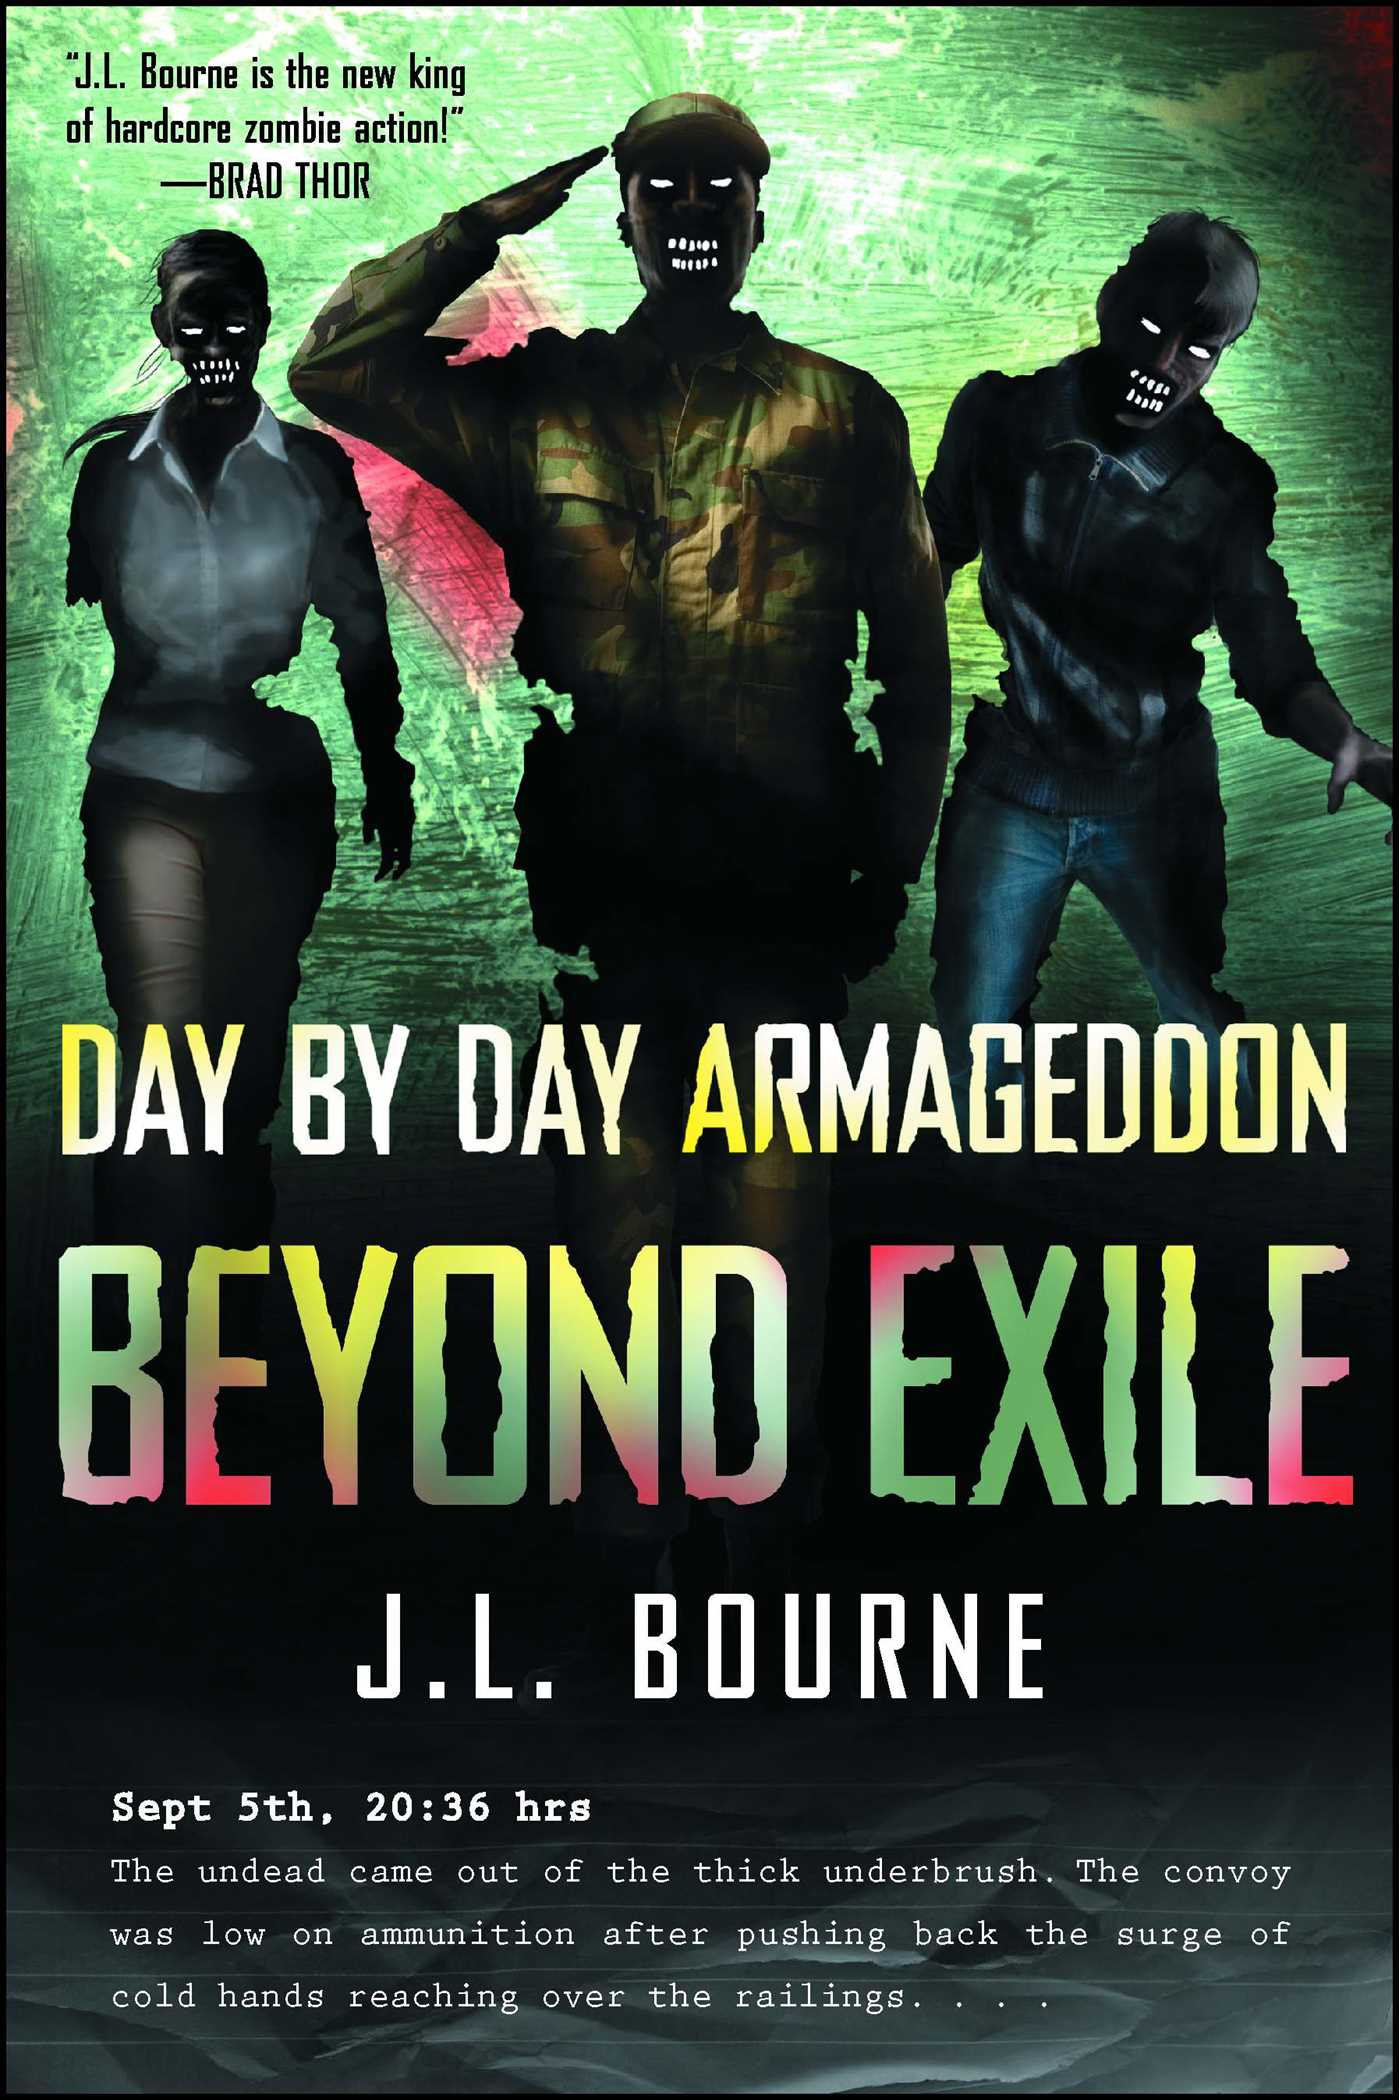 Beyond exile day by day armageddon 9781439177525 hr